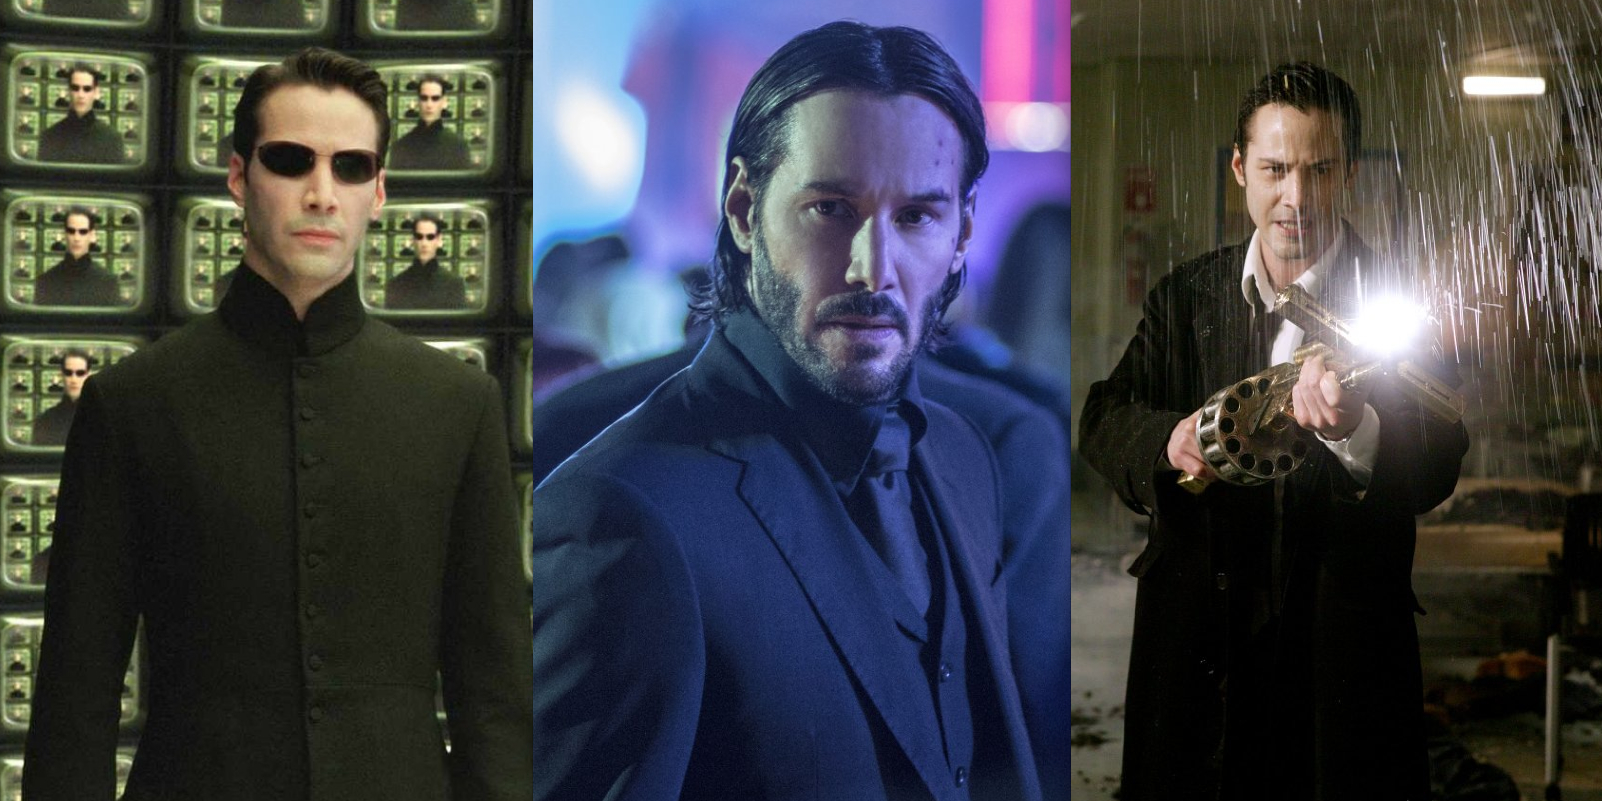 Keanu Reeves as Neo, John Wick and Constantine